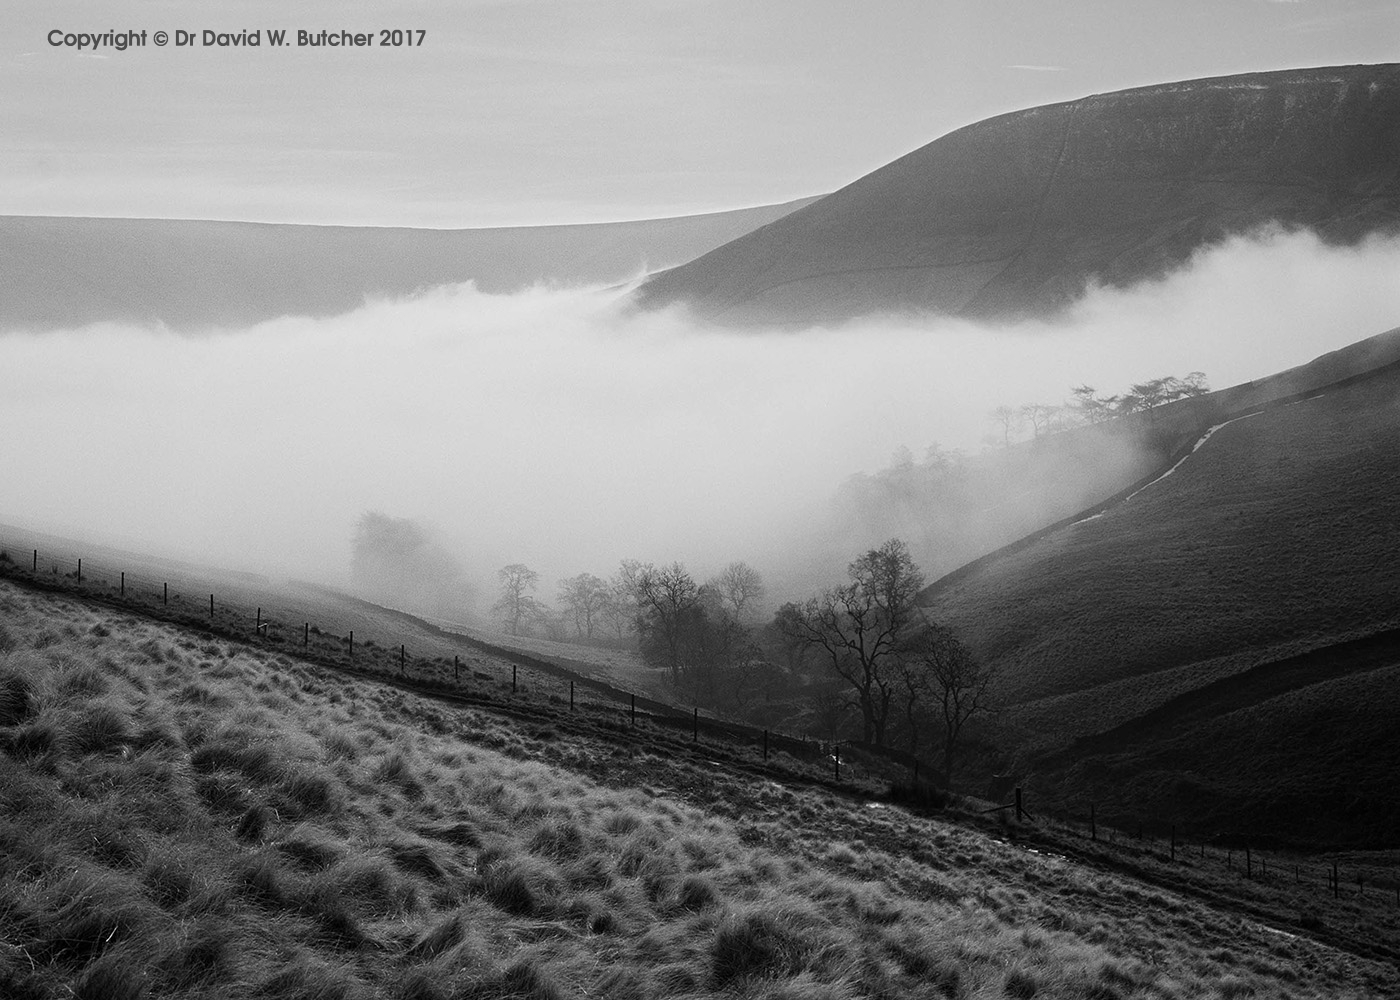 Clouds in the Valley, Crowden Brook, Edale, Kinderscout, Peak District